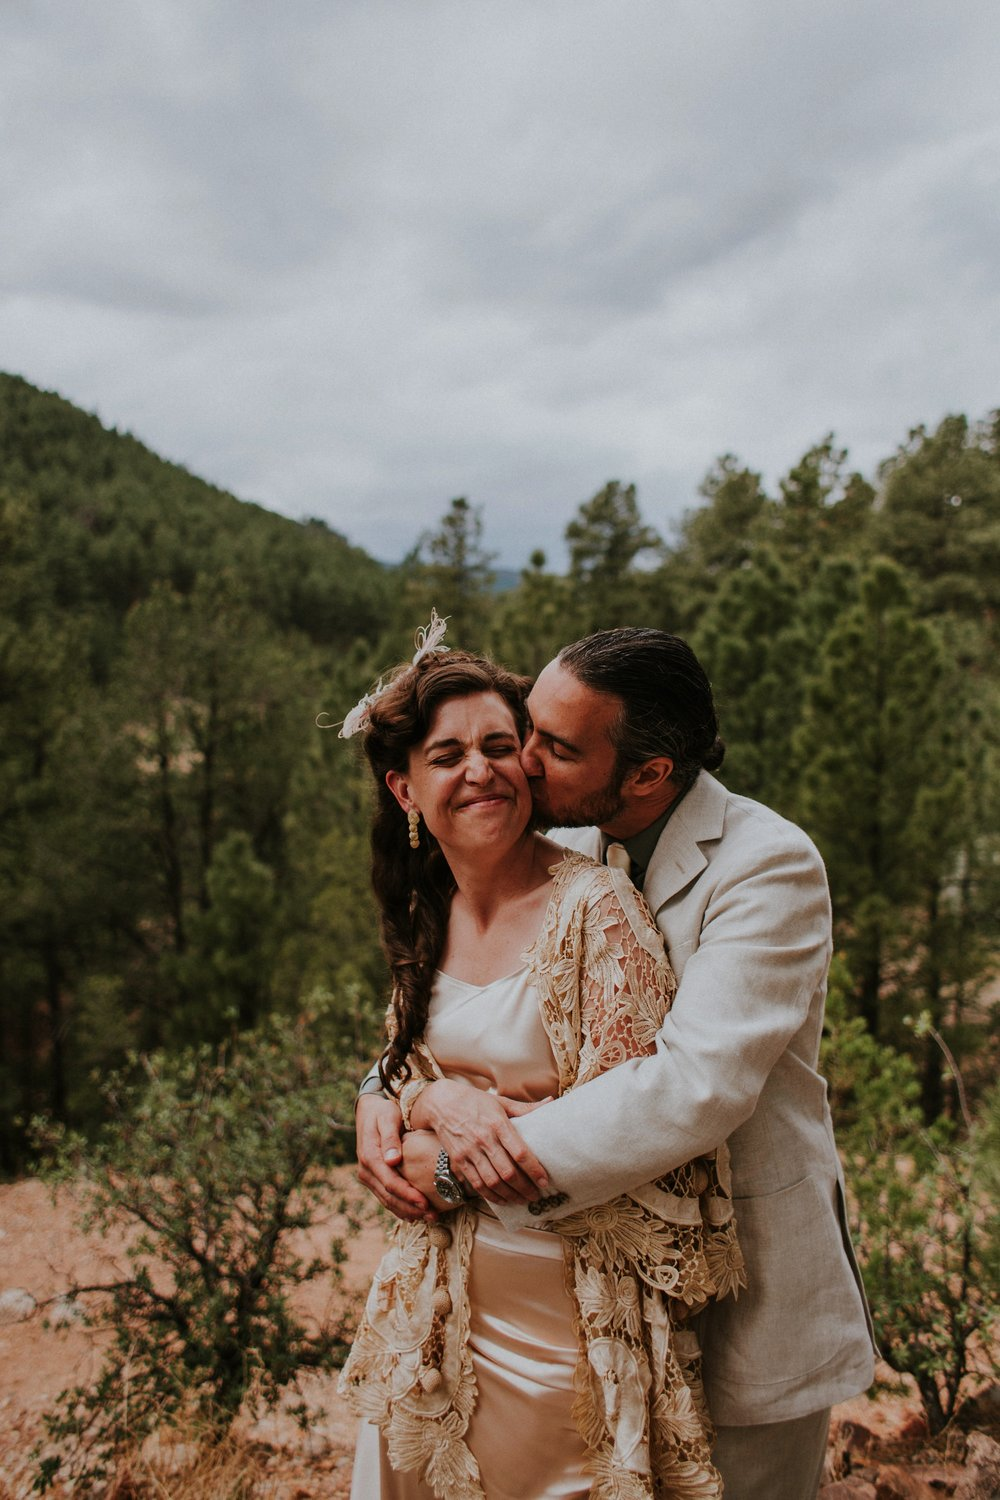 0000000000000000000063_Dwan-Light-Sanctuary-Wedding-Photos_Johnson-Mumford_Rainbow-Wedding_Montezuma-New-Mexico-Wedding-Photography-57.jpg